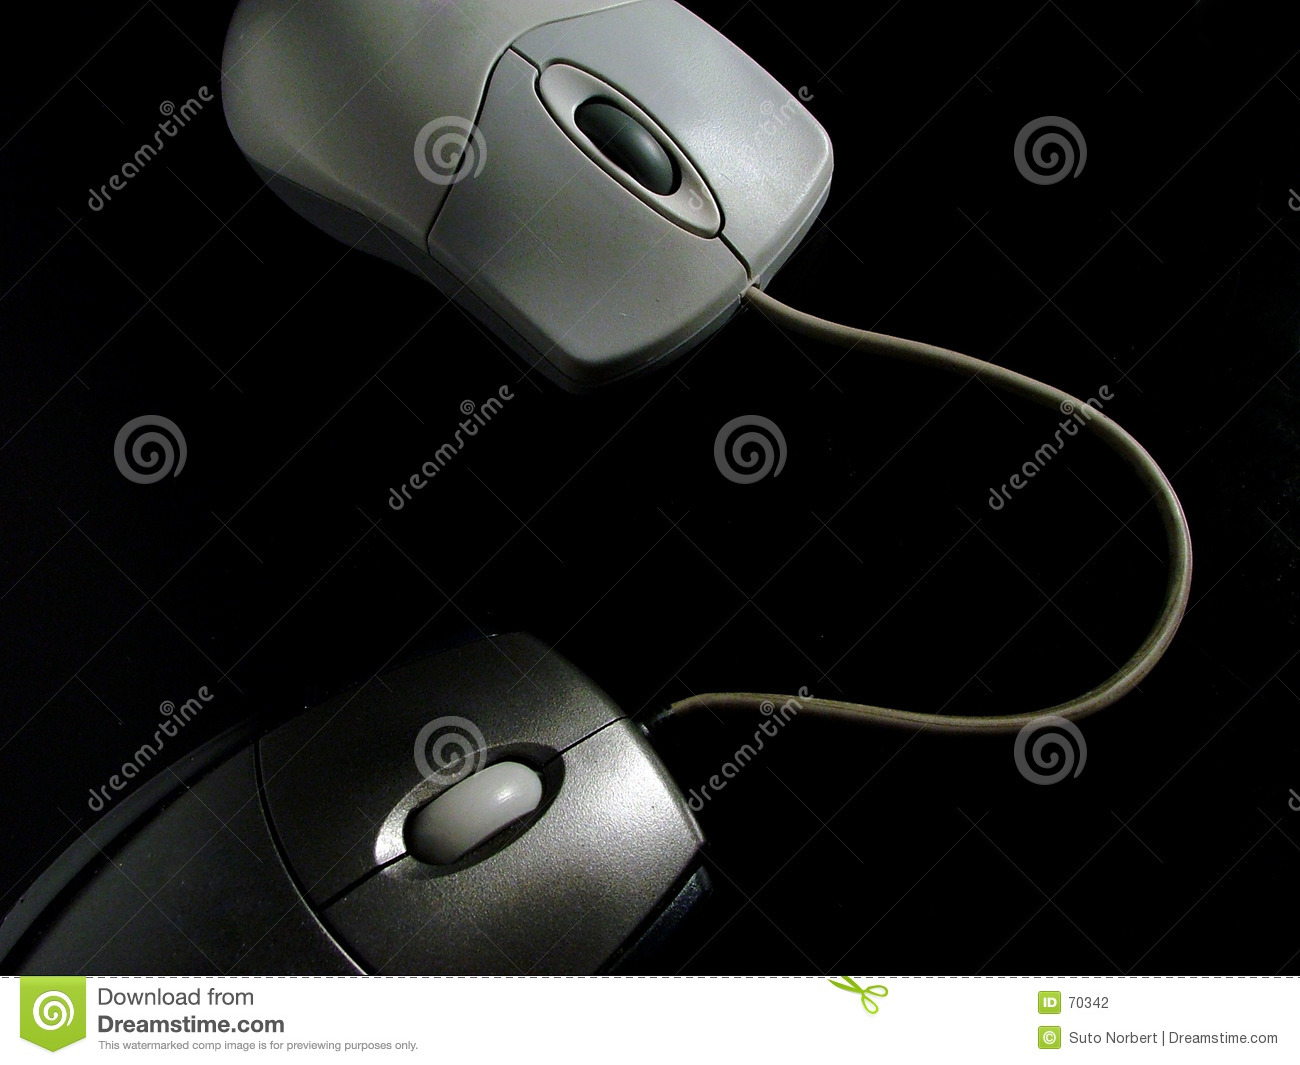 Mouse on Mouse Cyber Sex